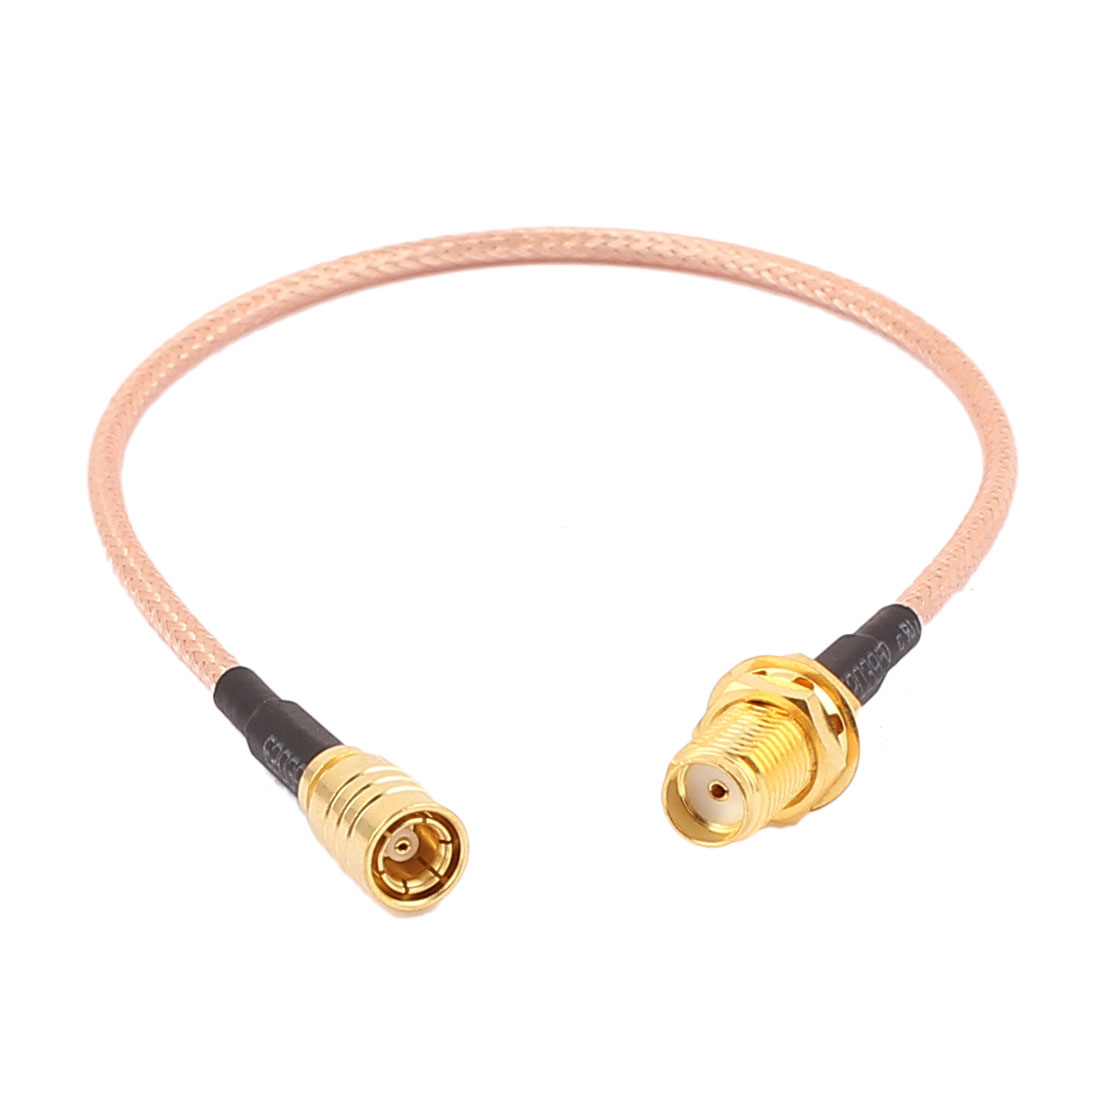 SMB-TK Female to SMA-KY Female RG316 Coaxial Cable Pigtail 20cm